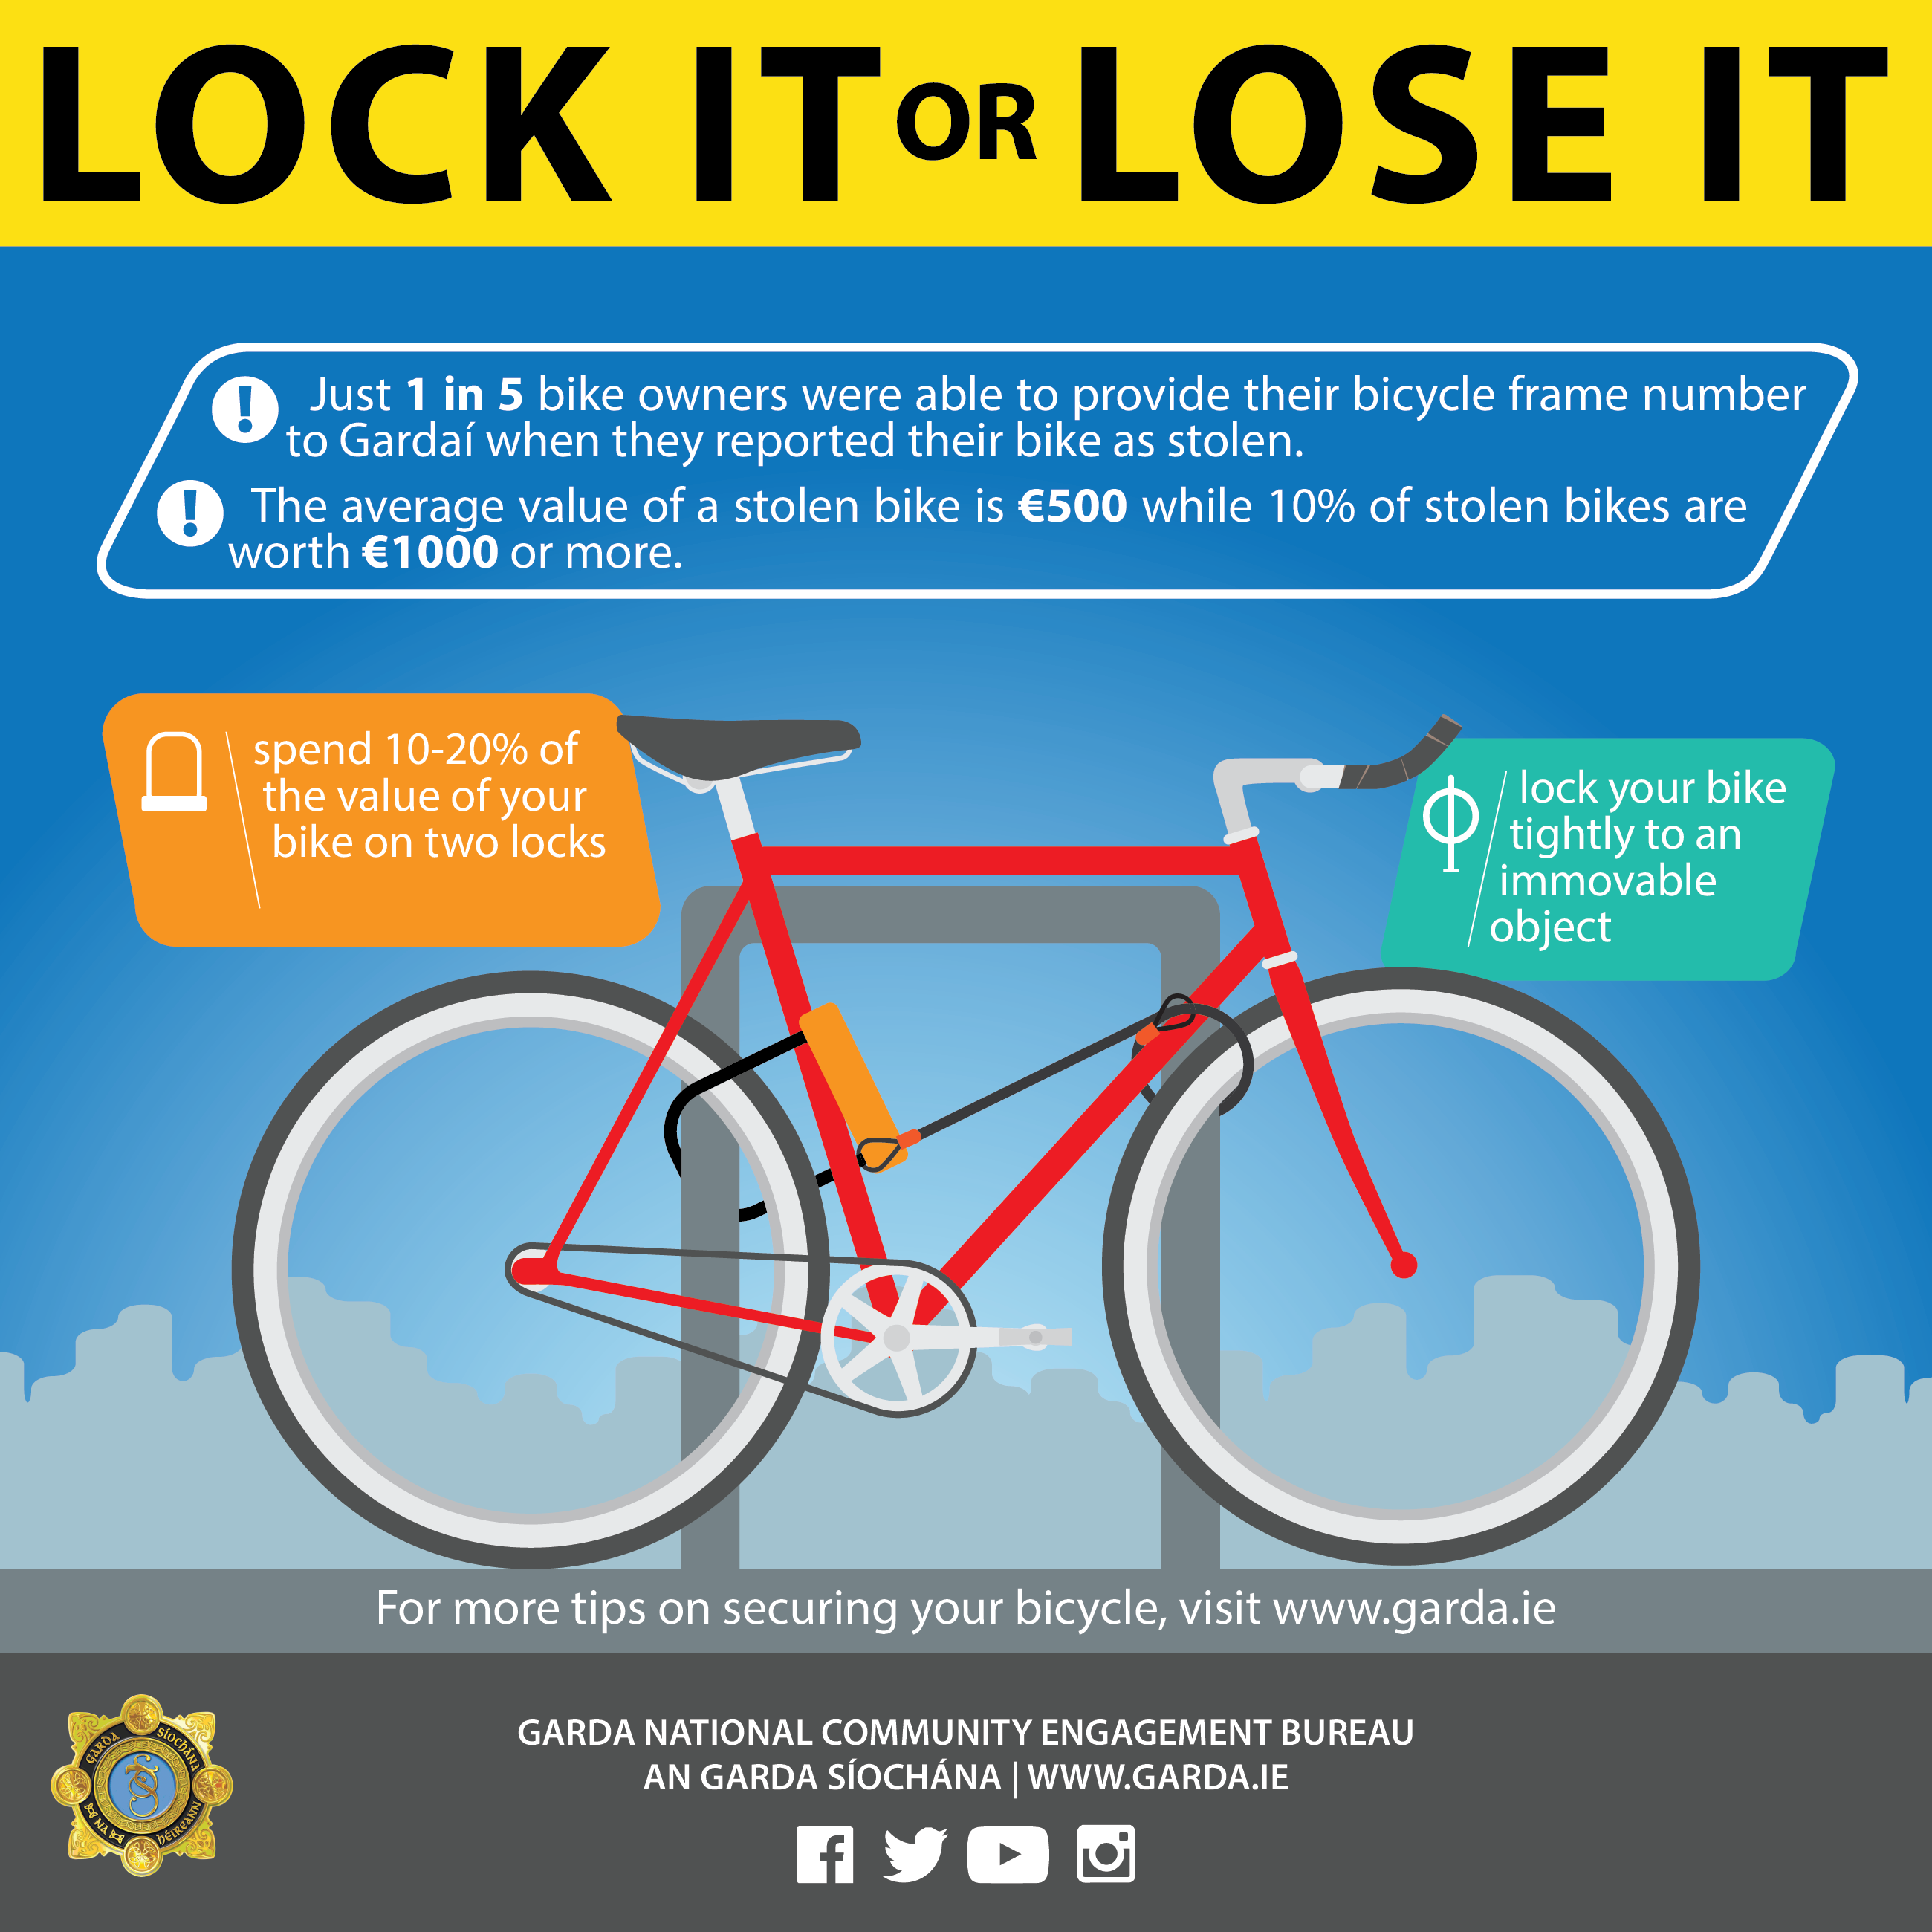 /en/about-us/our-departments/office-of-corporate-communications/news-media/lock-it-or-lose-it-bicycle-security.png